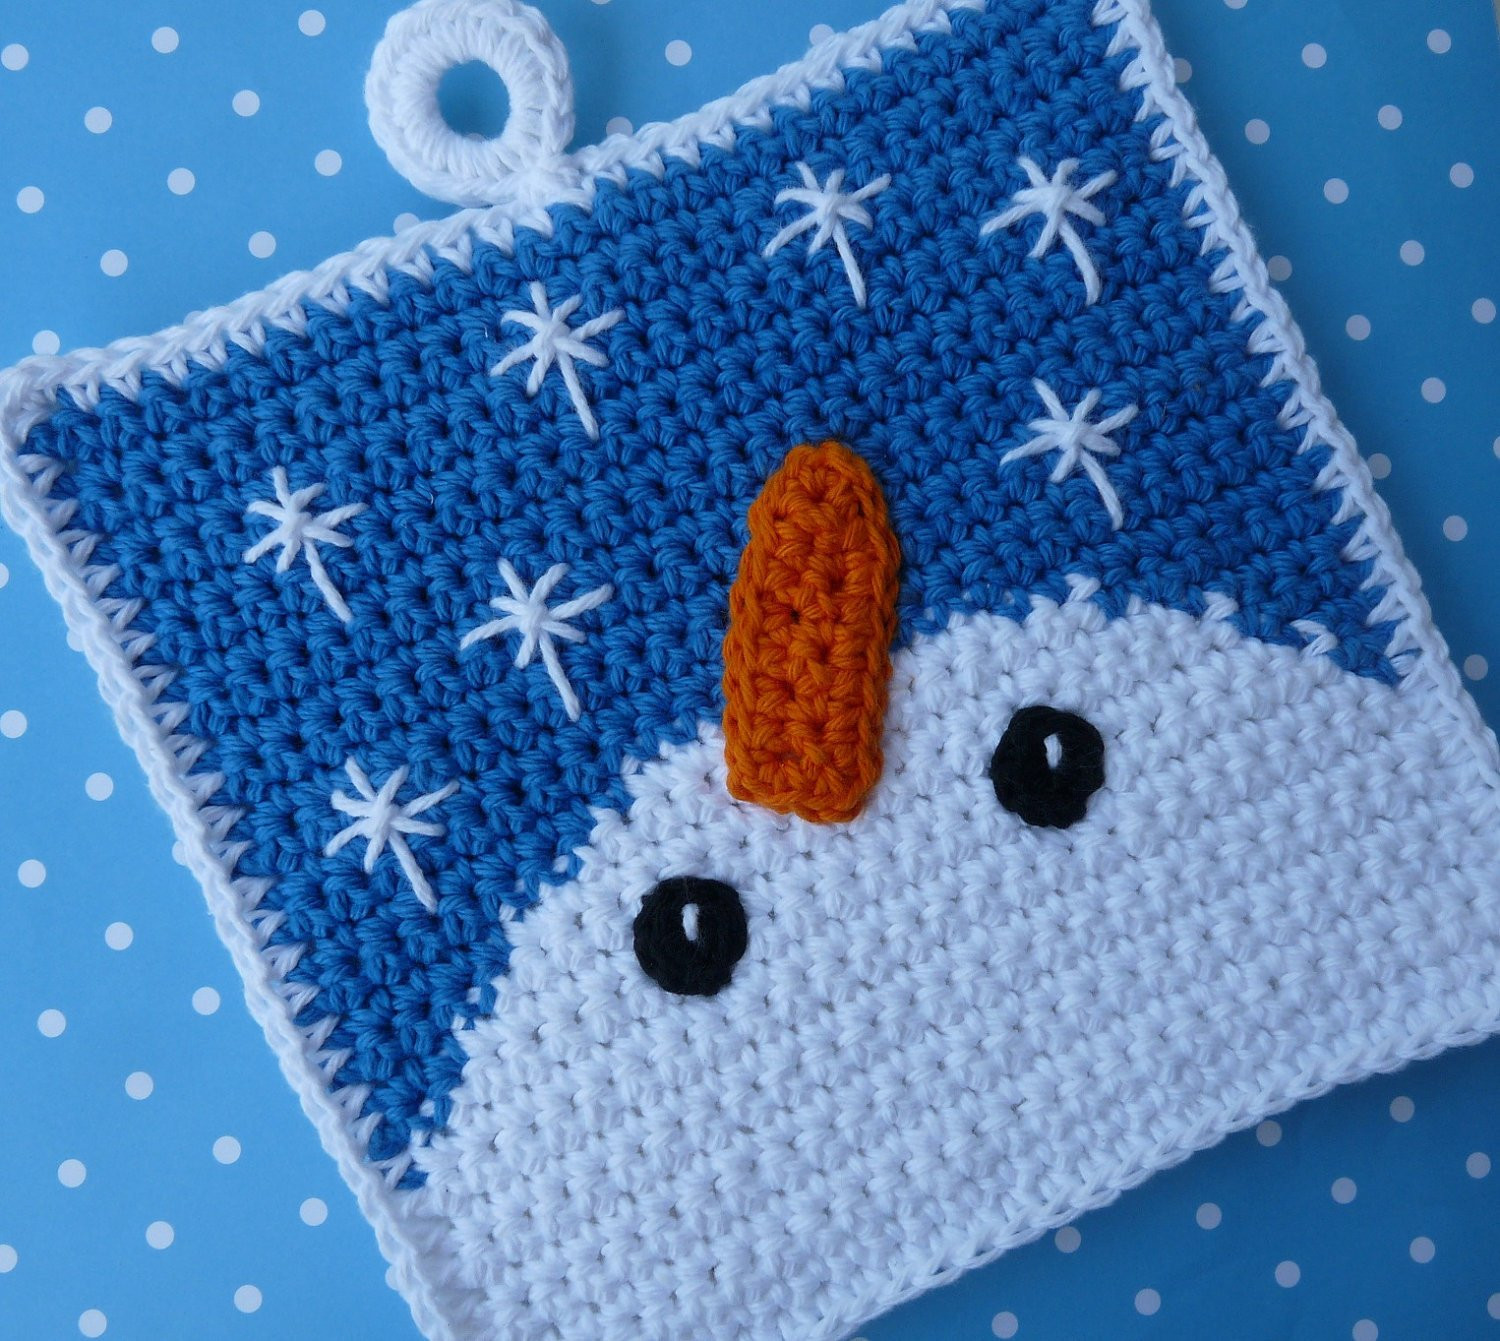 Crochet Potholder Pattern Fresh Snowman Gazing at Snowflakes Potholder Crochet Pattern Of Amazing 43 Pictures Crochet Potholder Pattern